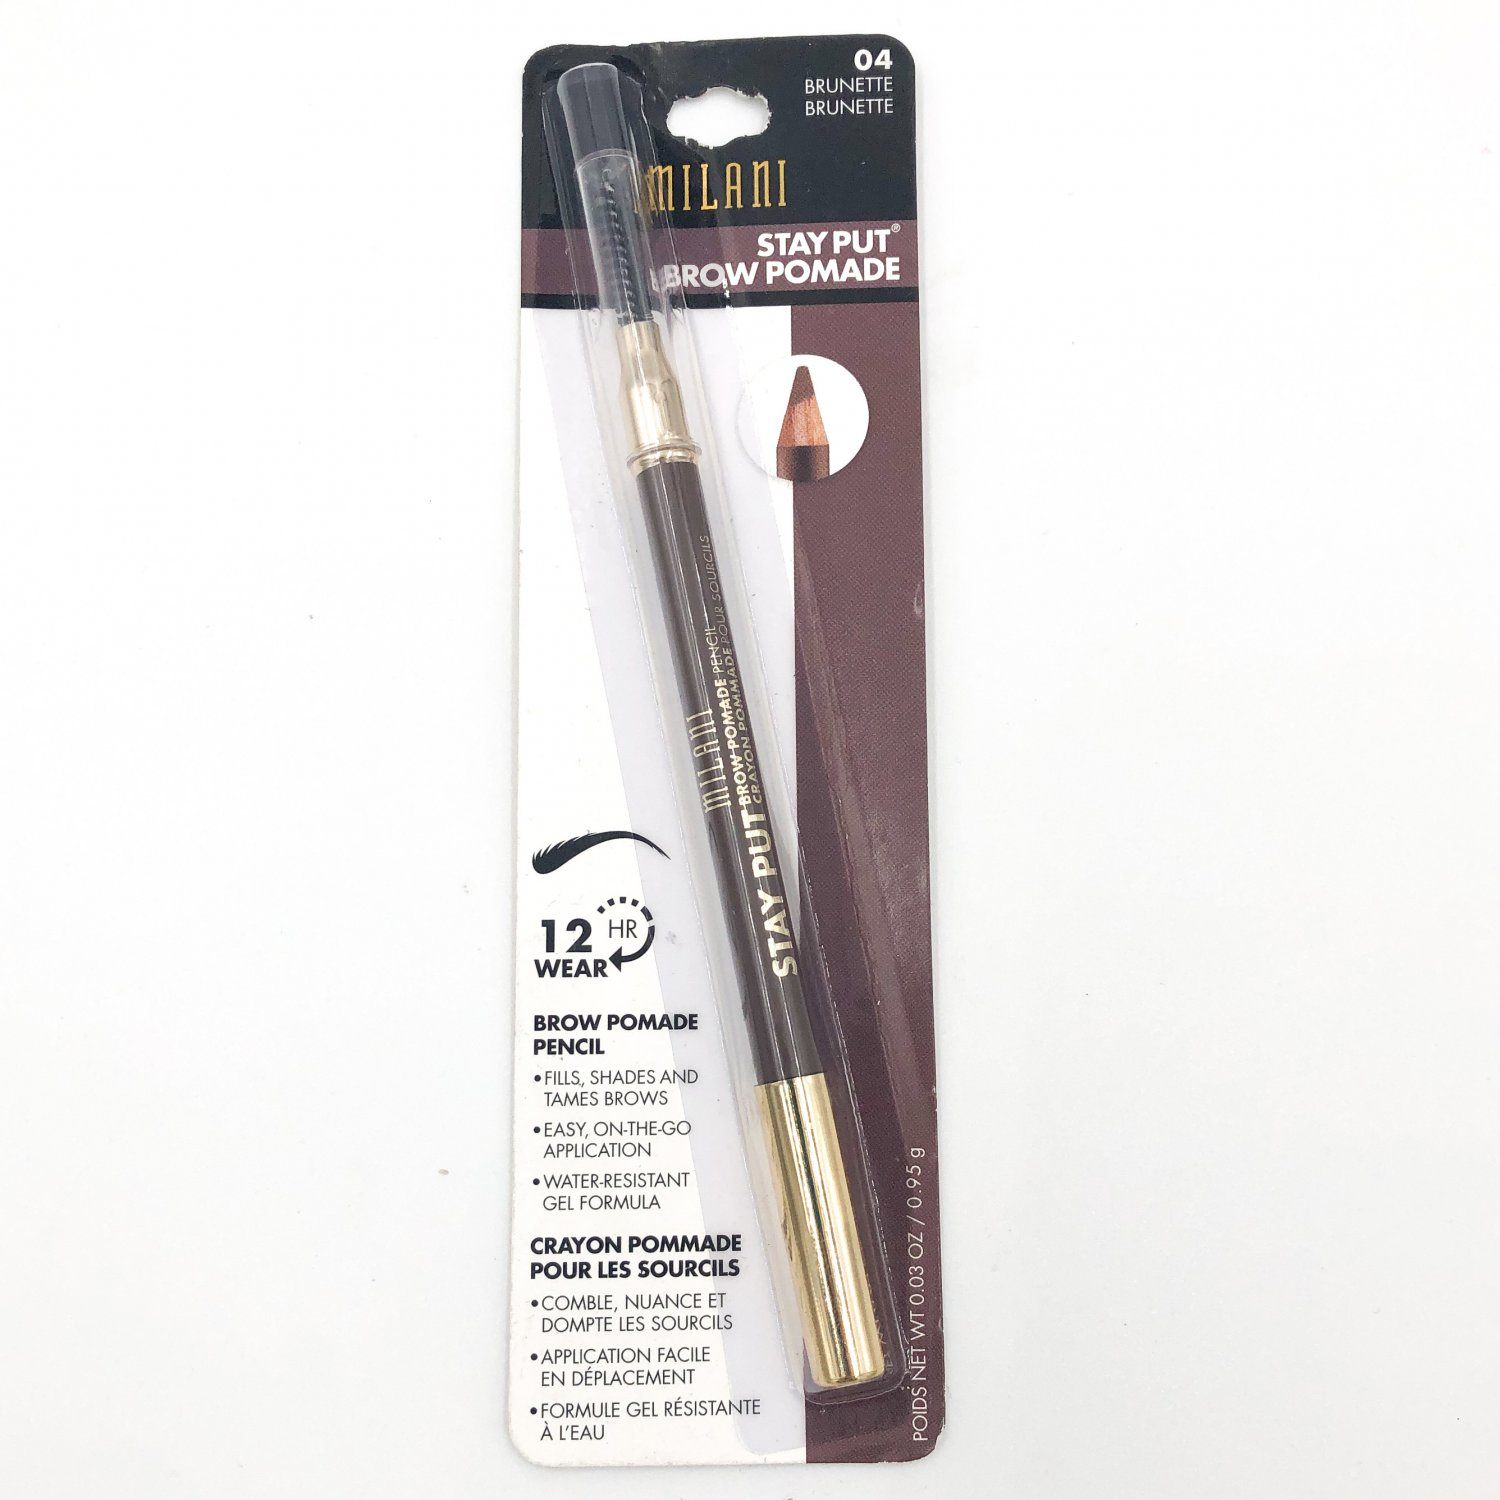 Milani Stay Put Brow Pomade Pencil 04 Brunette